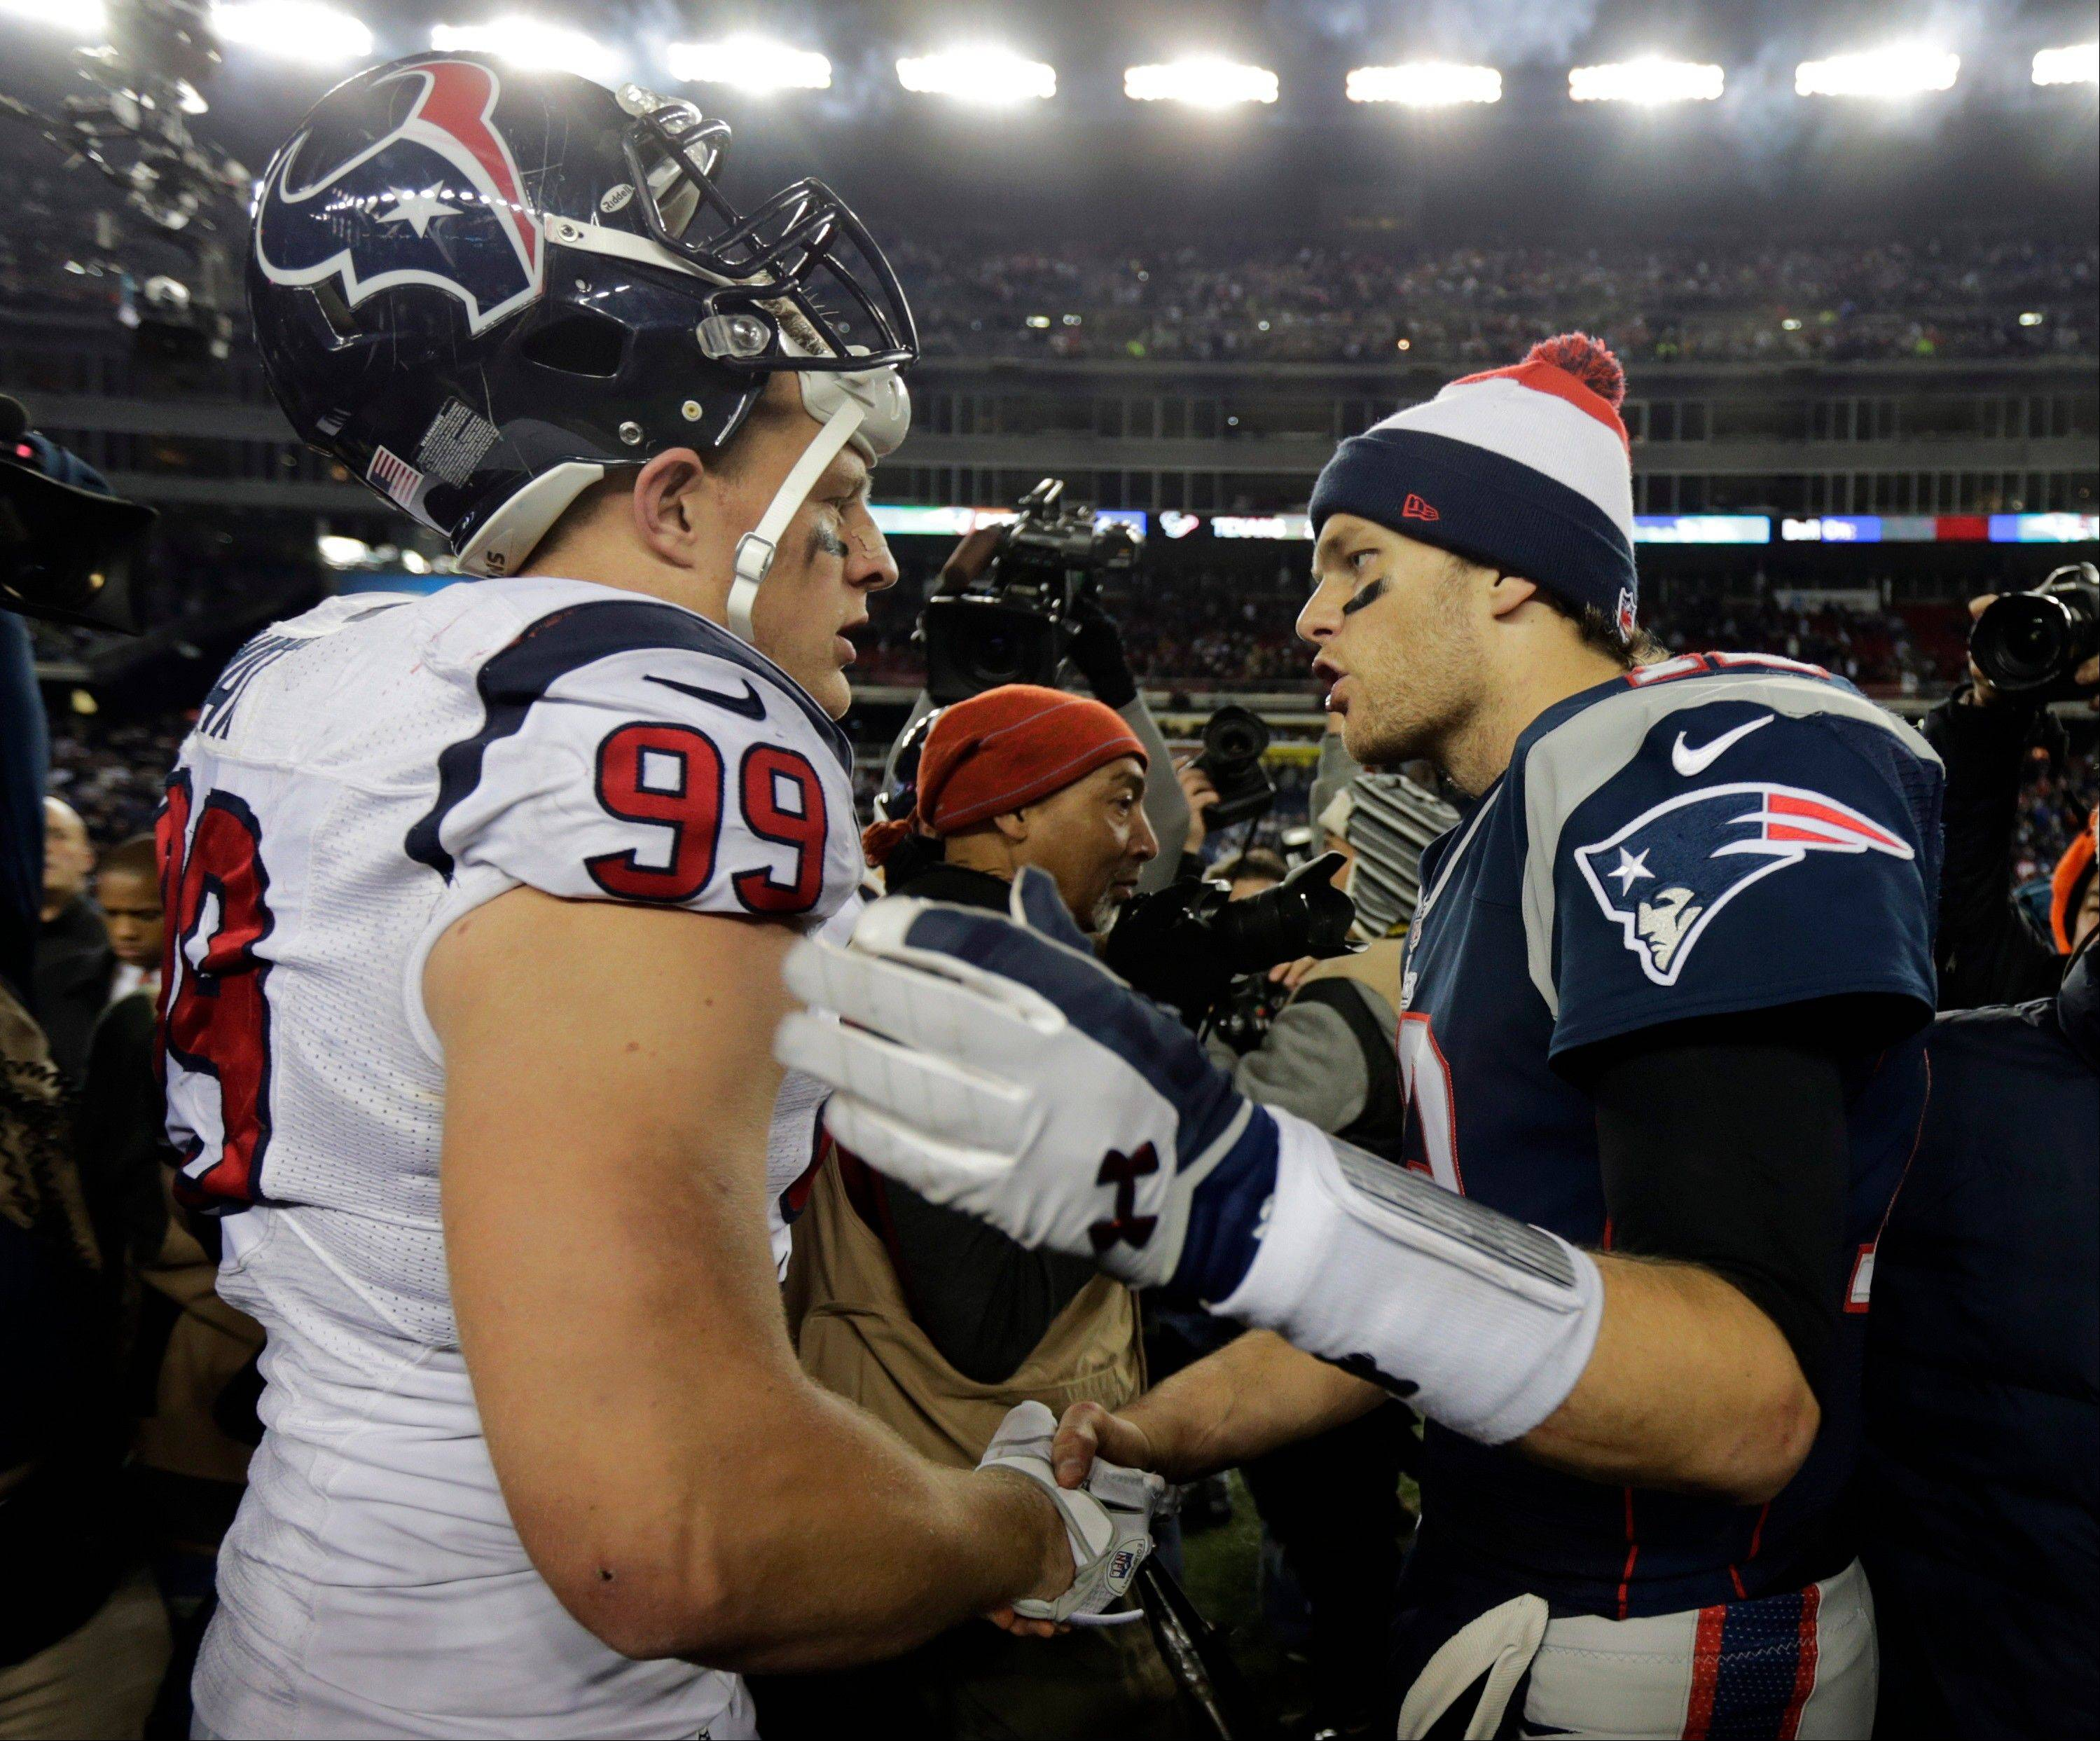 New England Patriots quarterback Tom Brady, right, talks with Houston Texans defensive end J.J. Watt following their AFC divisional playoff NFL football game in Foxborough, Mass., Sunday, Jan. 13, 2013. The Patriots defeated the Texans 41-28.